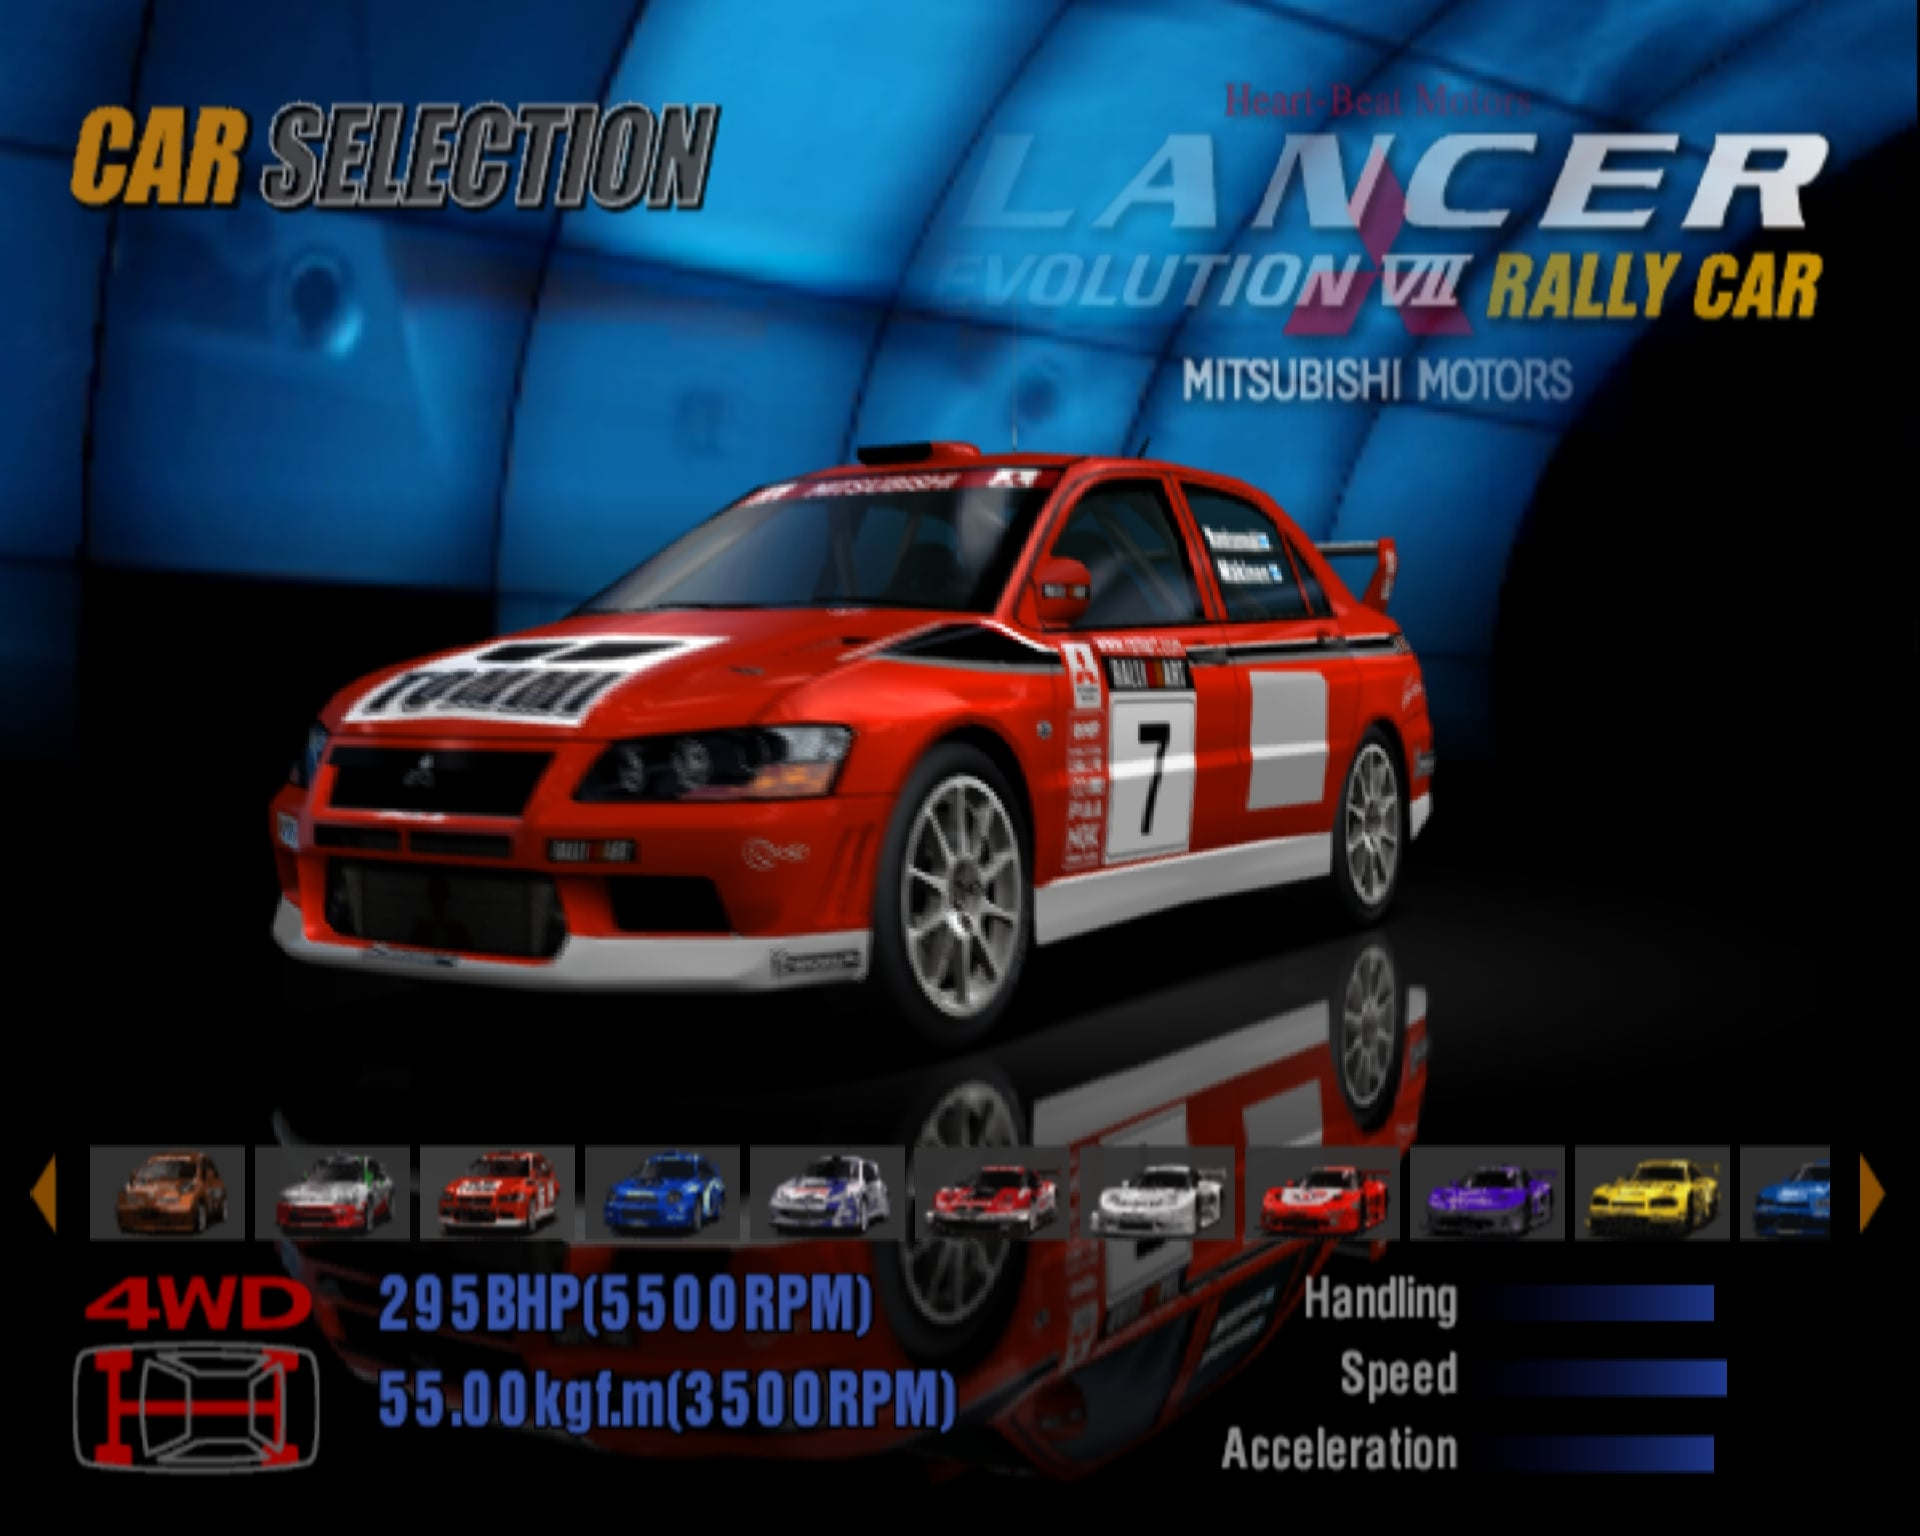 Mitsubishi Lancer Evolution VII Rally Car '01